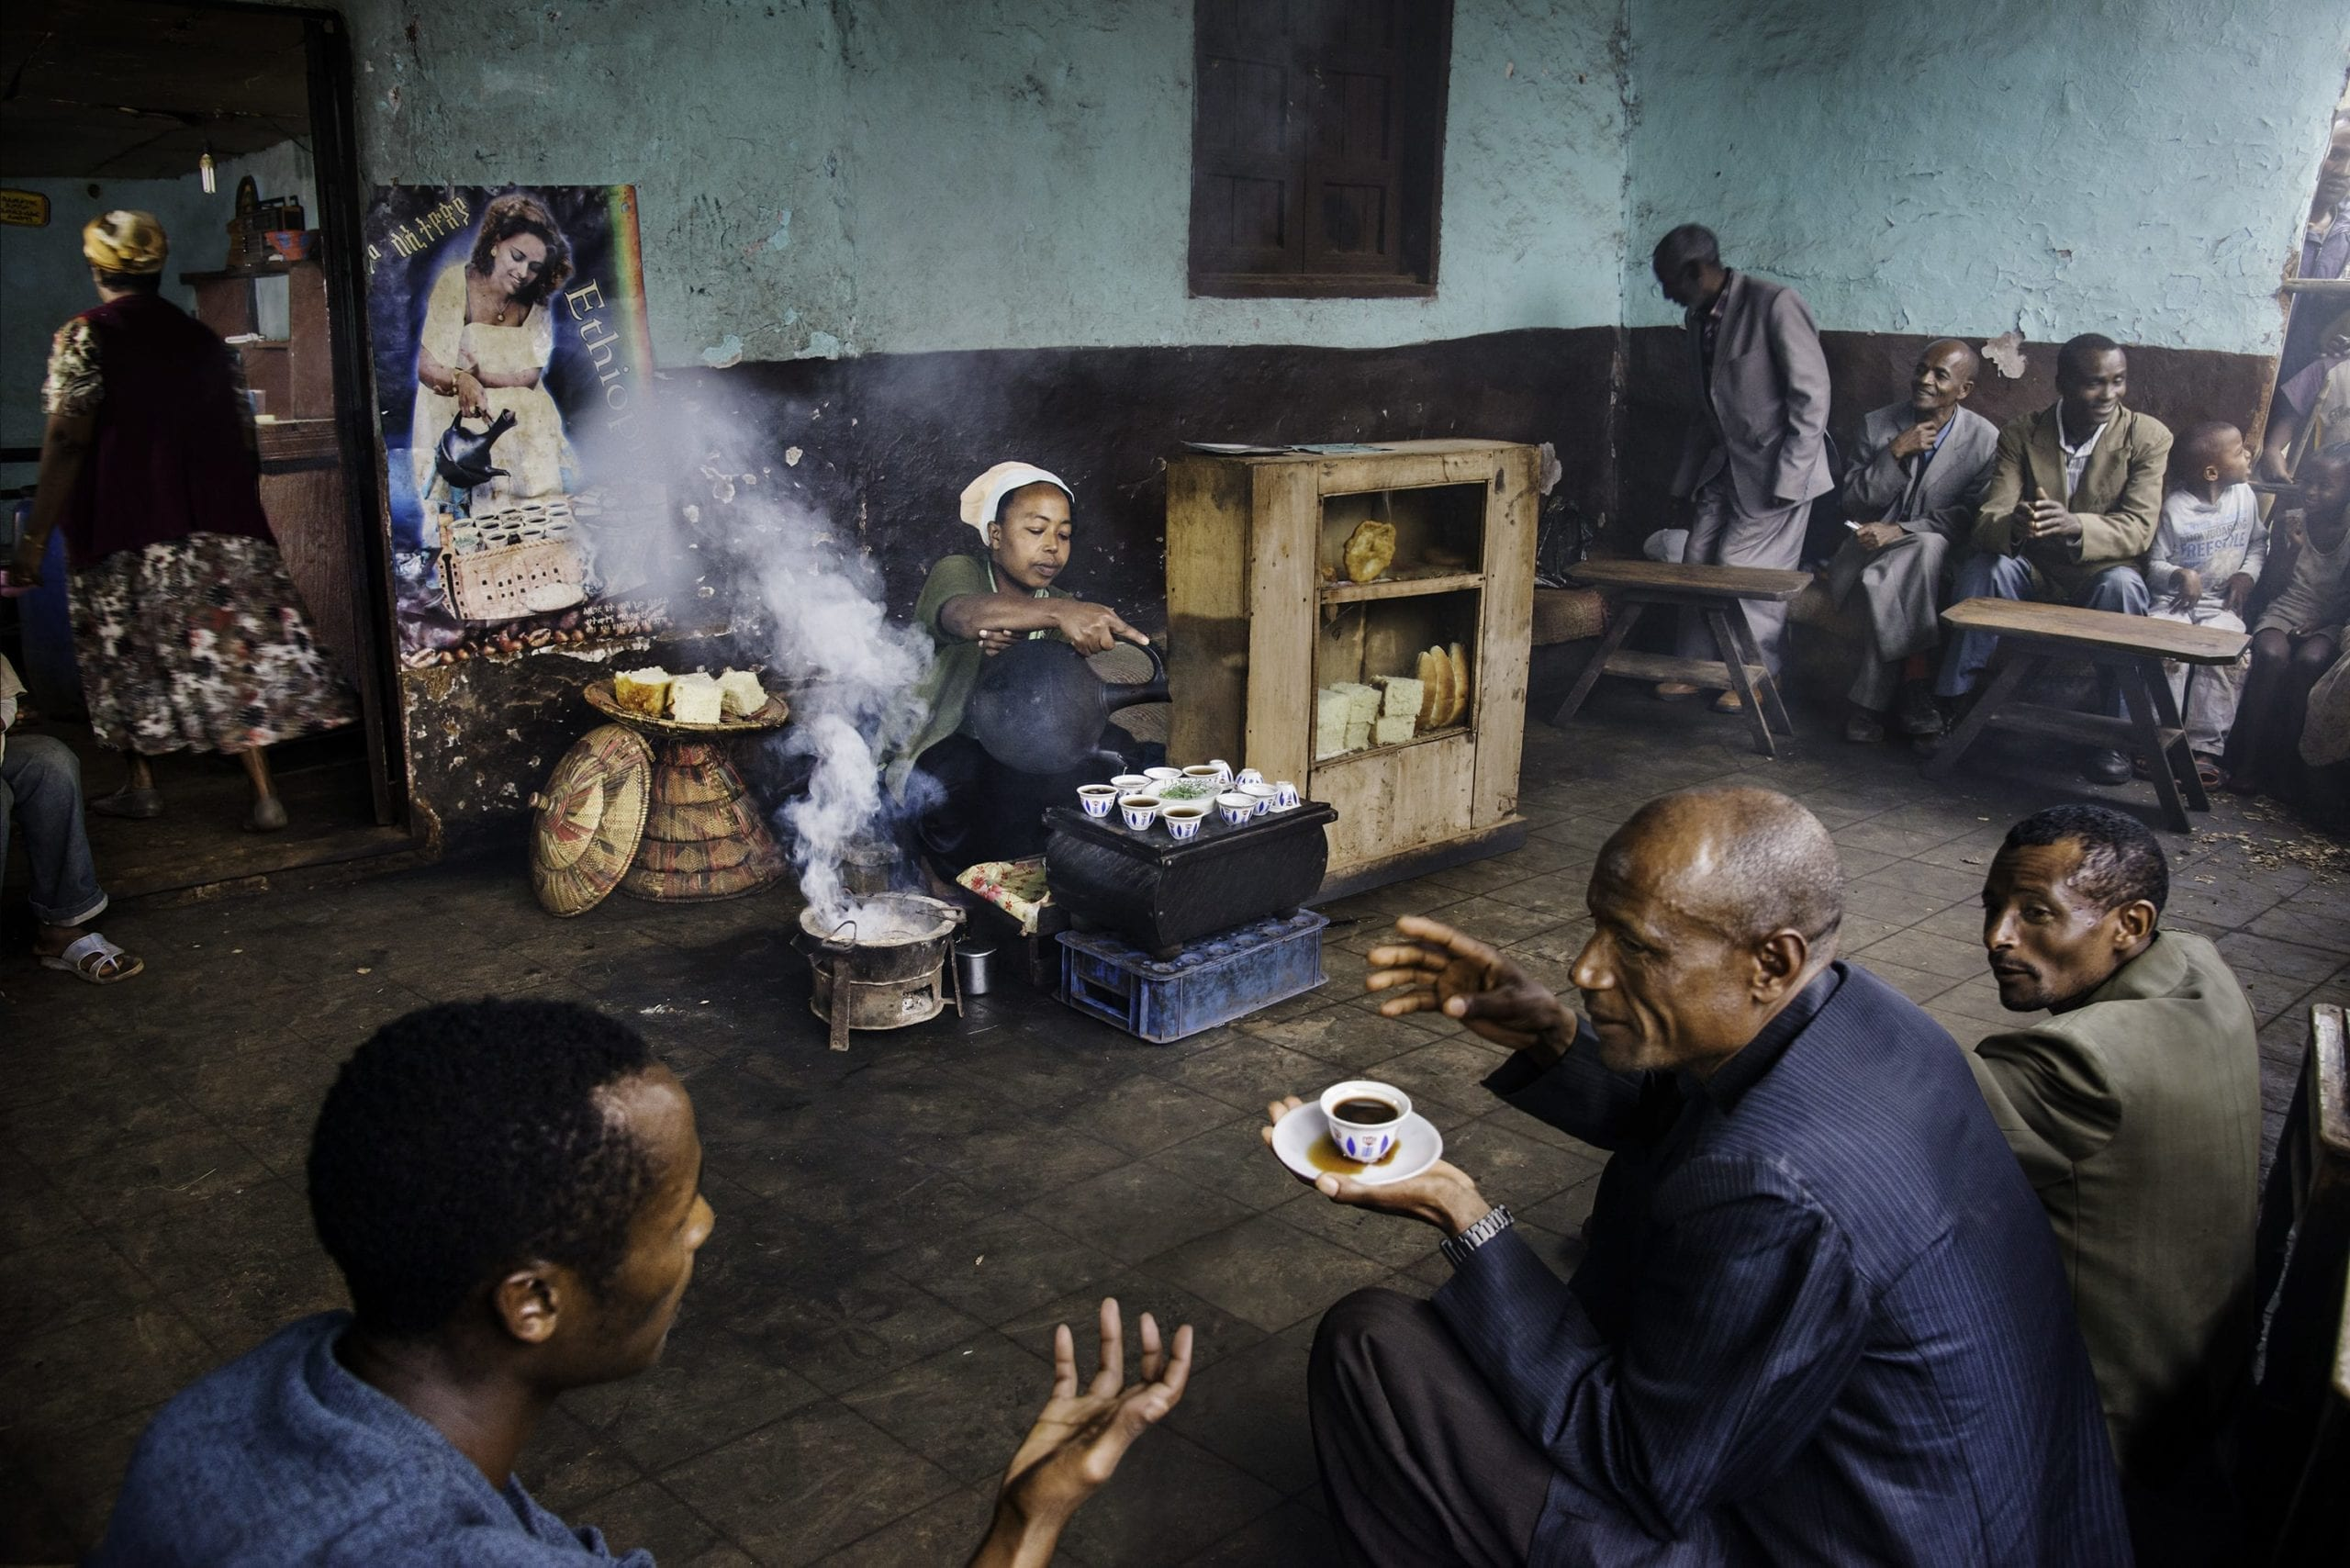 mccurry steve coffee ritual meaning photograph photographs ethiopia important afghan things amaro prepares print region woman bjp british